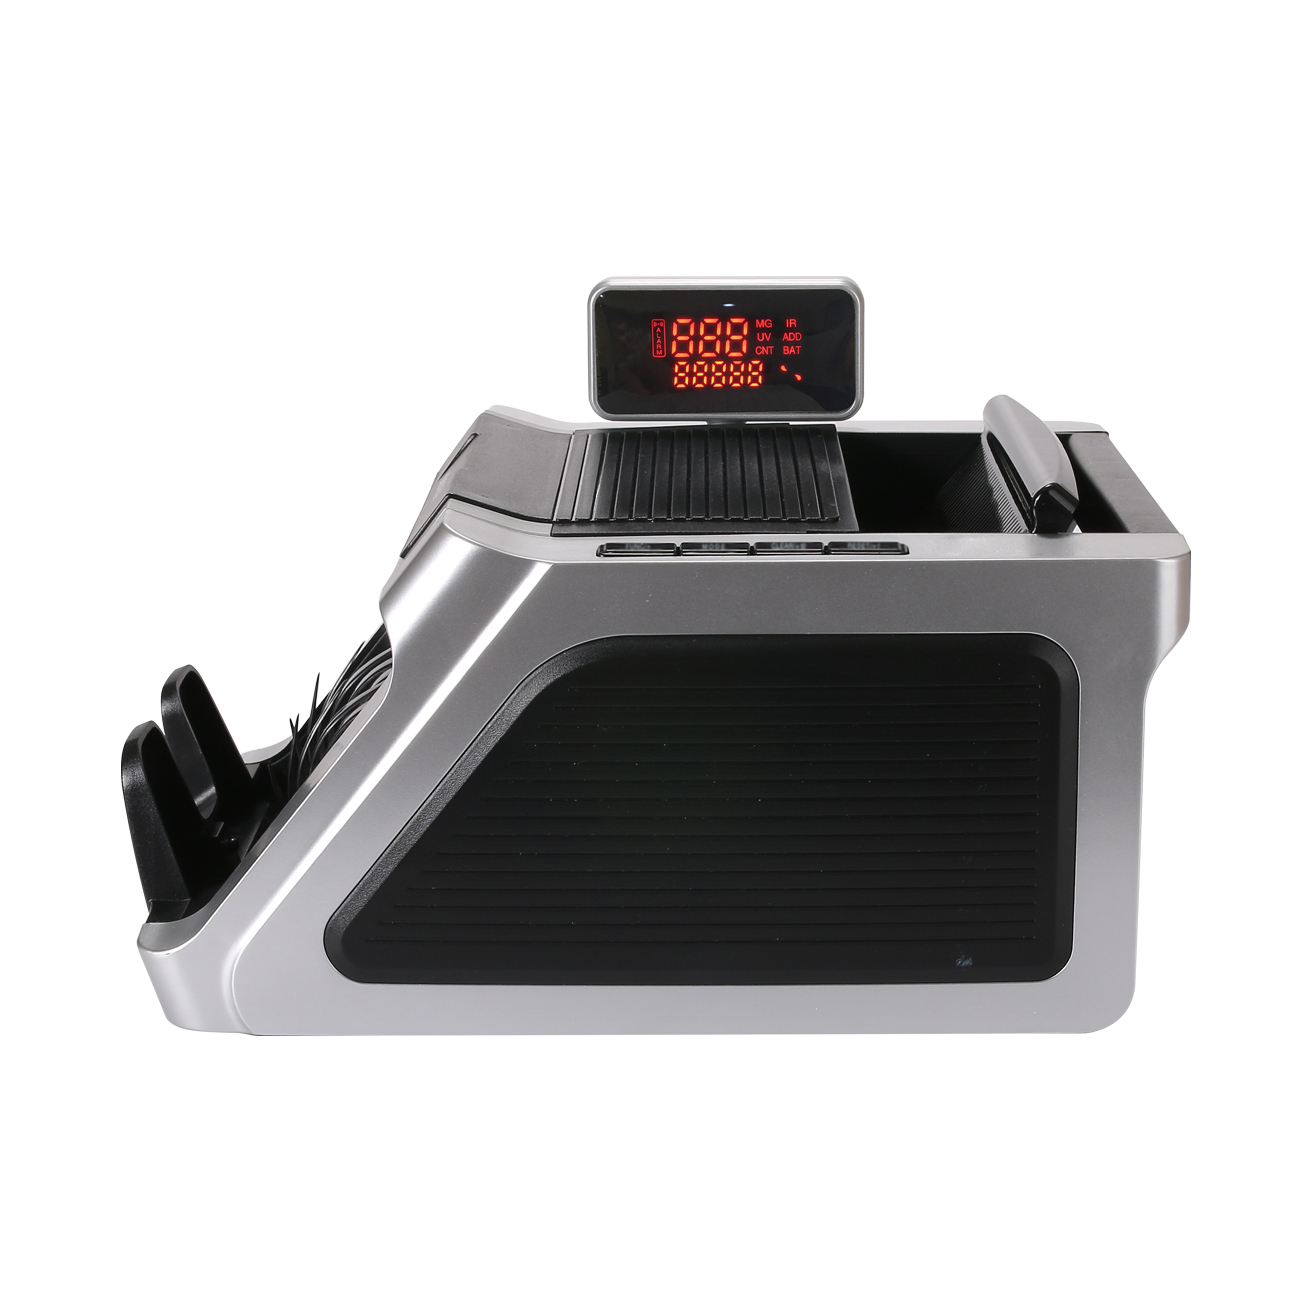 Money Counting LED Display Machine C05With UV, Magnetic And Infrared Detection